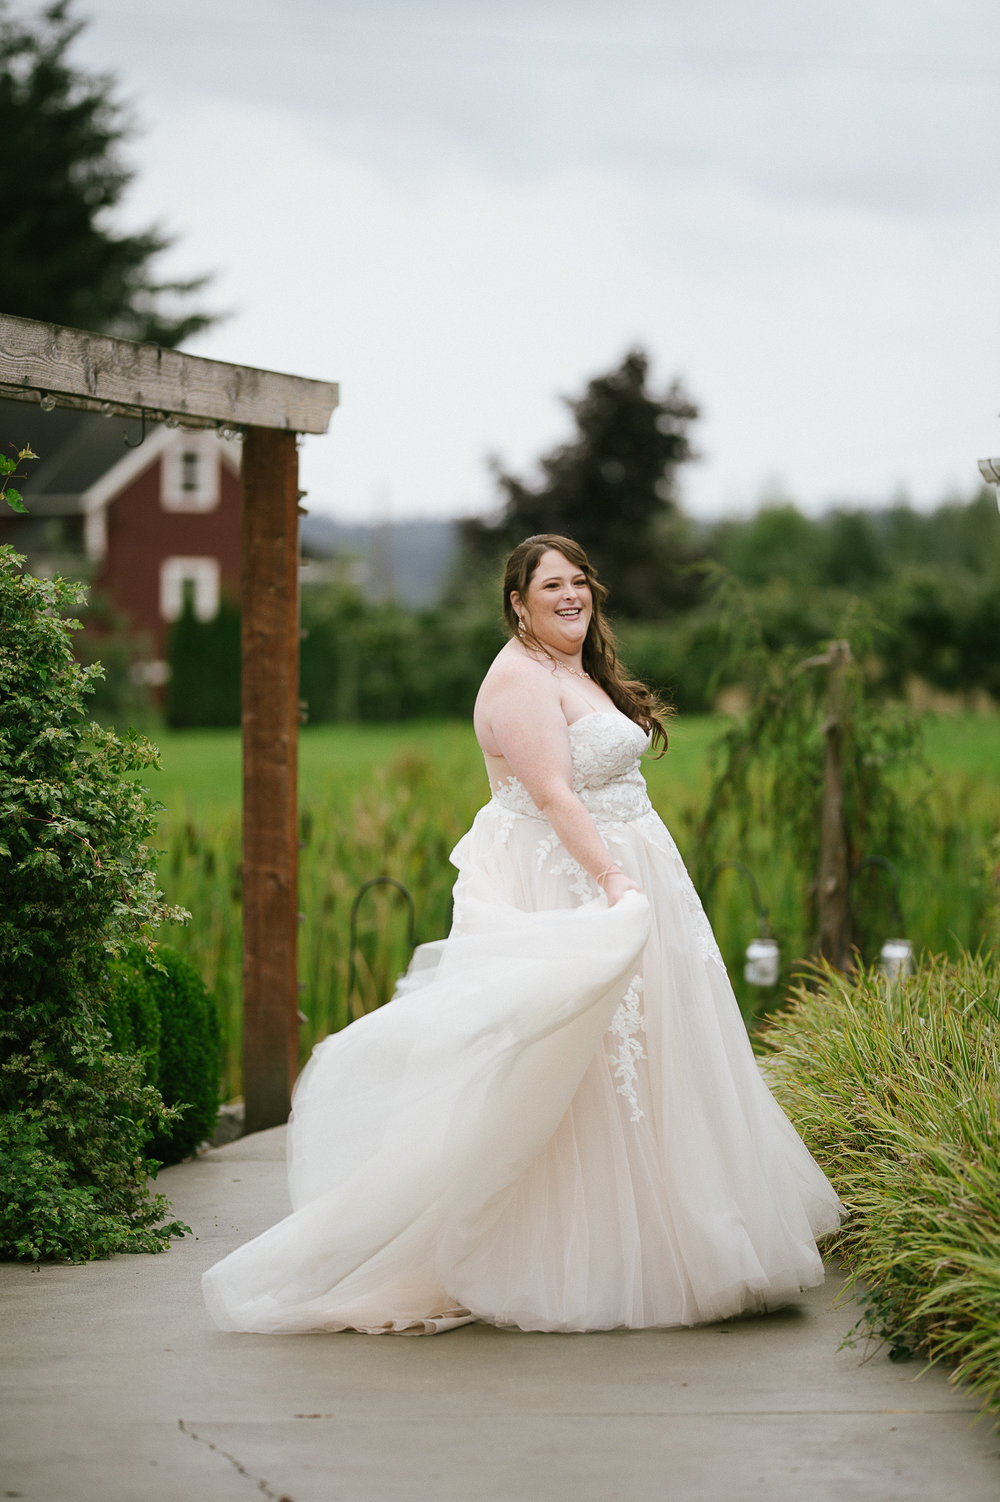 Swan Trail Farm Wedding_Sarah Schurman + Brian Skadan_Snohomish Wedding_Kelsey Lane Photography-5676.jpg